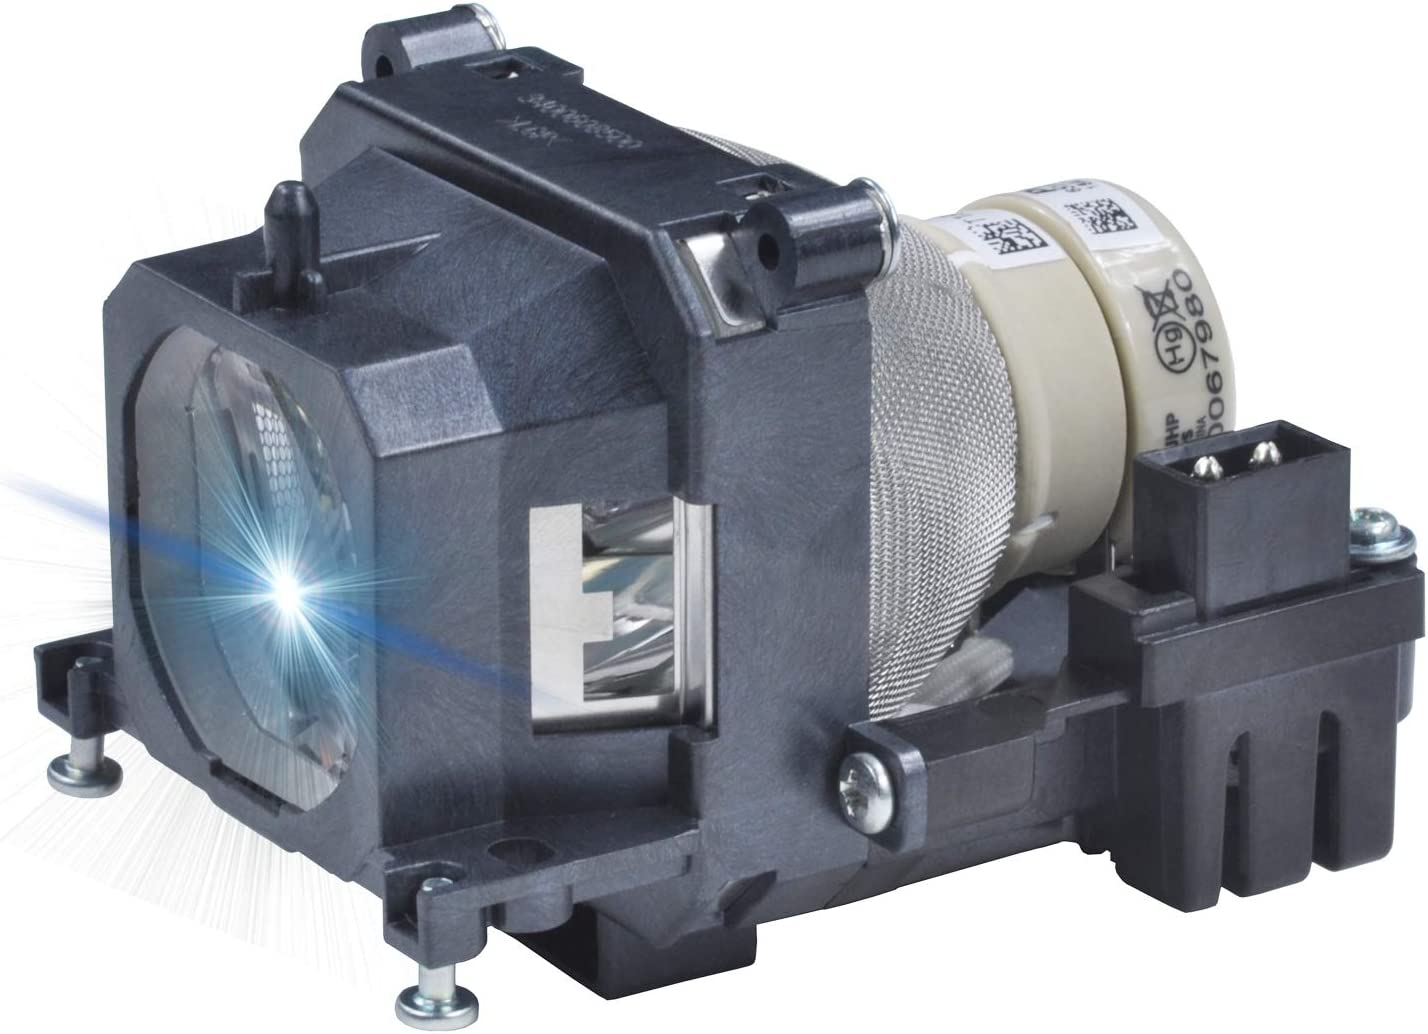 AWO Original Projector Lamp Bulb 420004500 with Housing Fit for Ask Proxima C3255,C3257,C3305,C3307,C3327W,S3277,S3307,S3307W